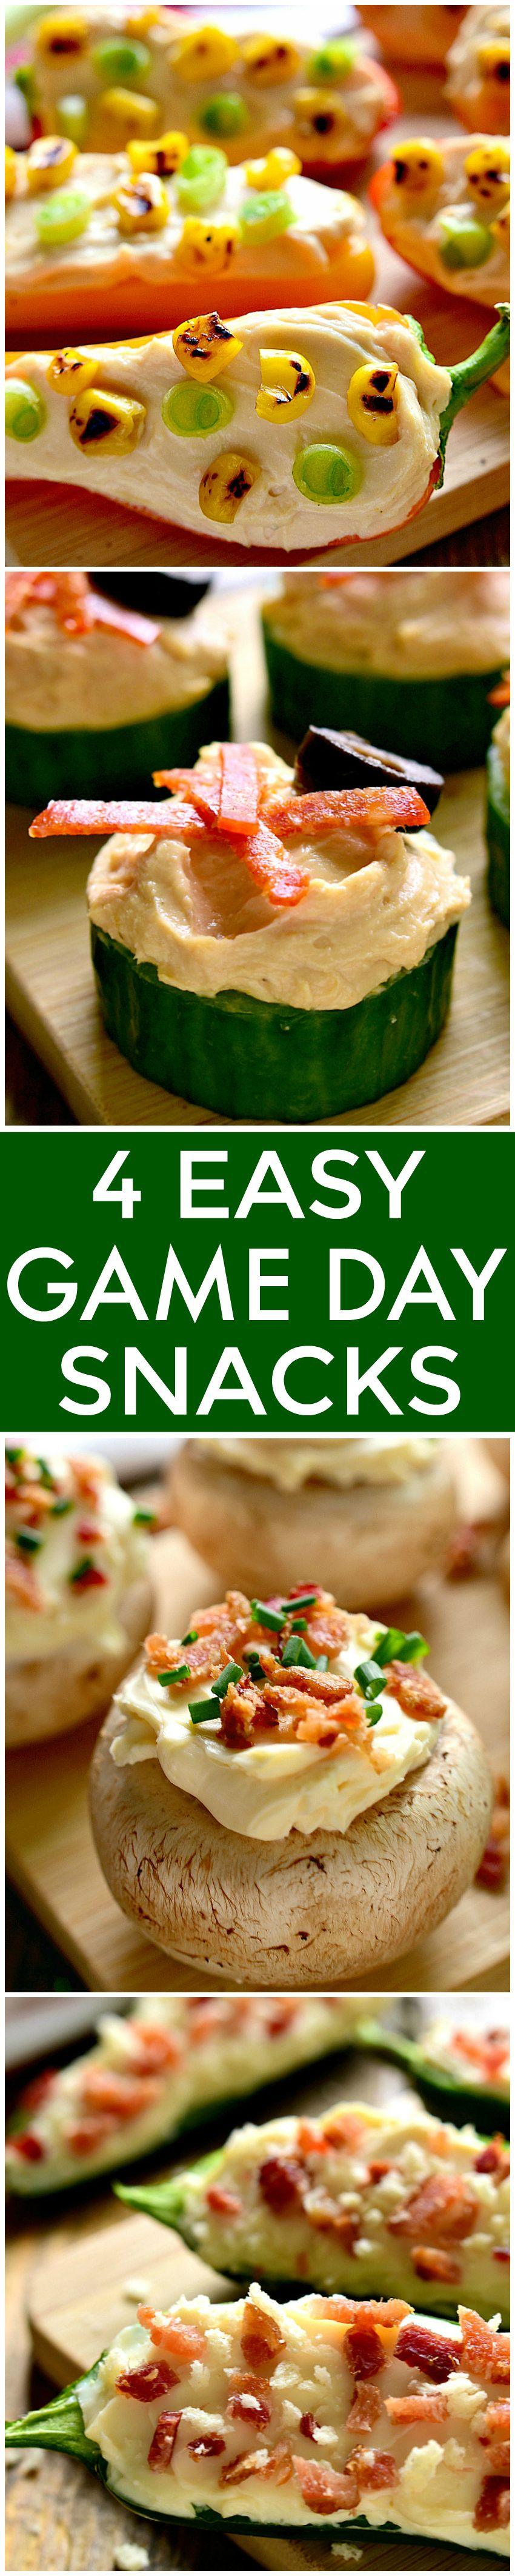 4 easy game day snacks each made with just 4 ingredients